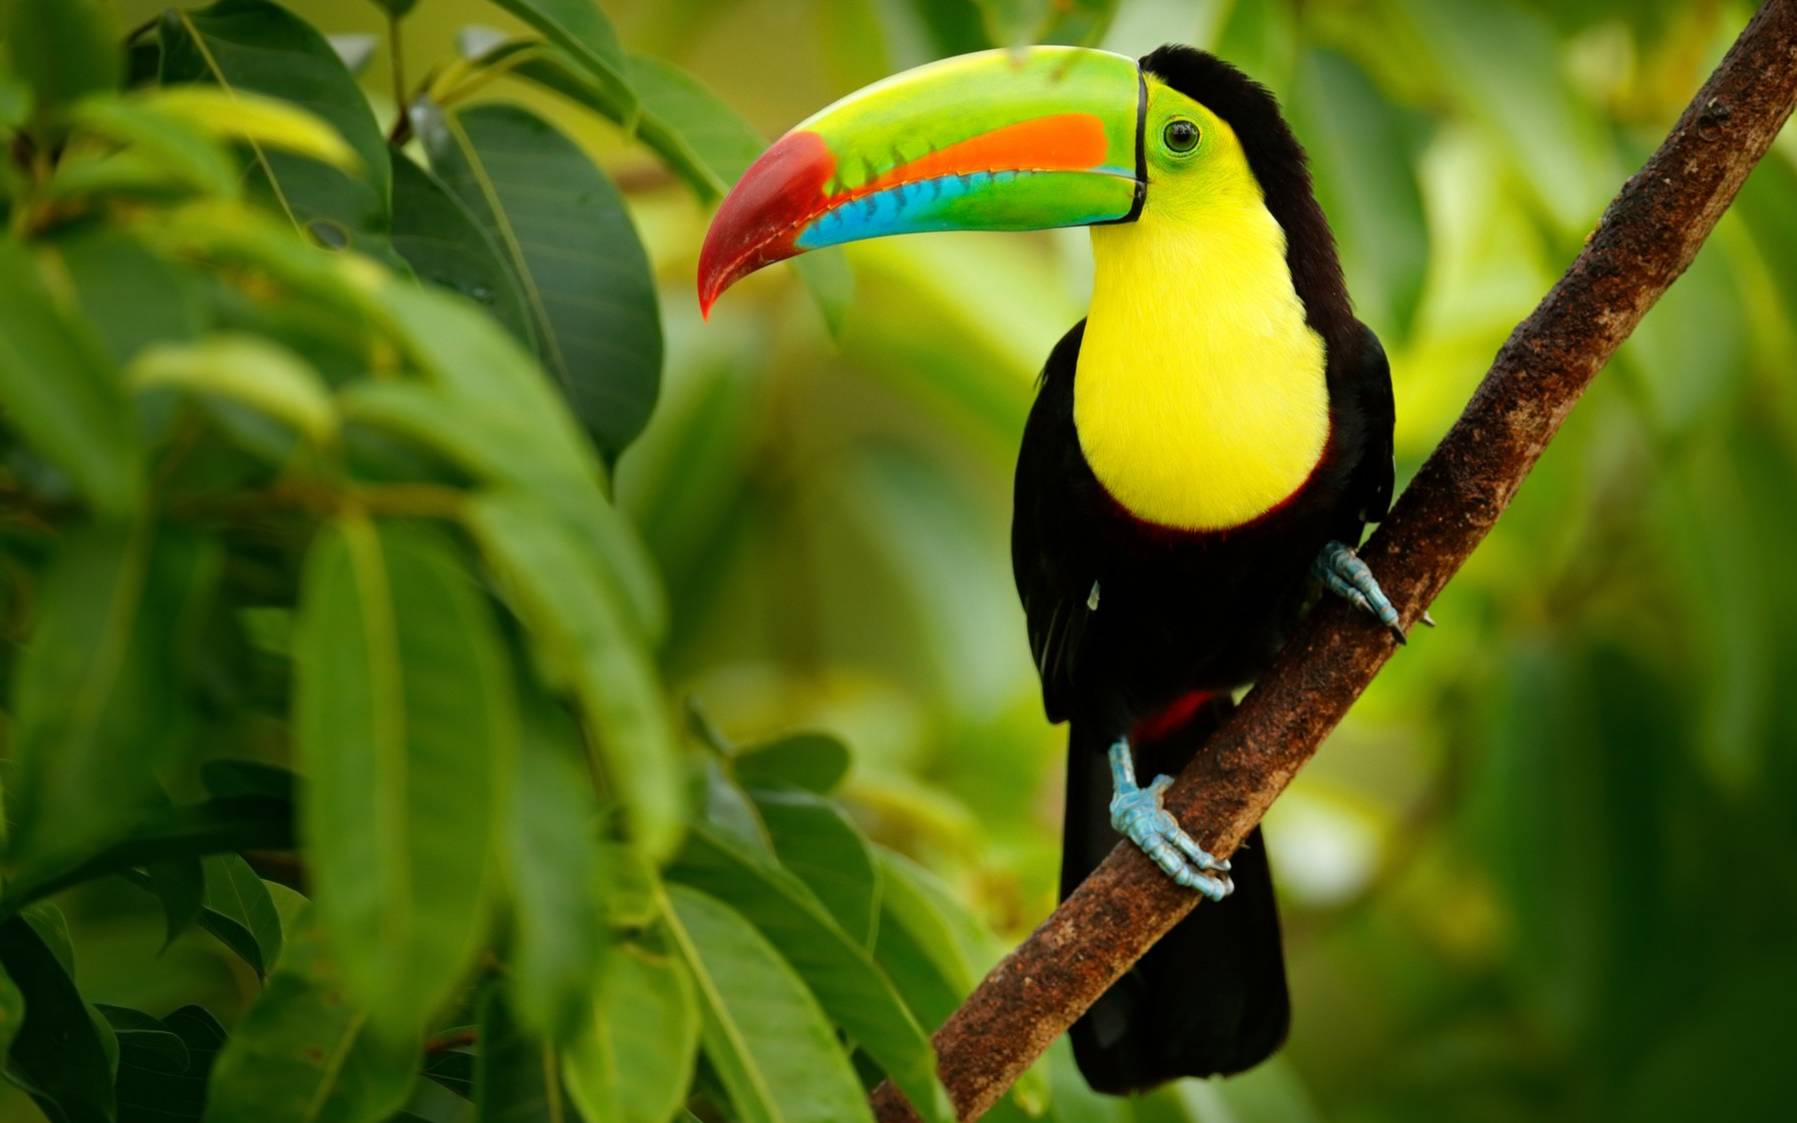 The Best Places To Visit In Costa Rica